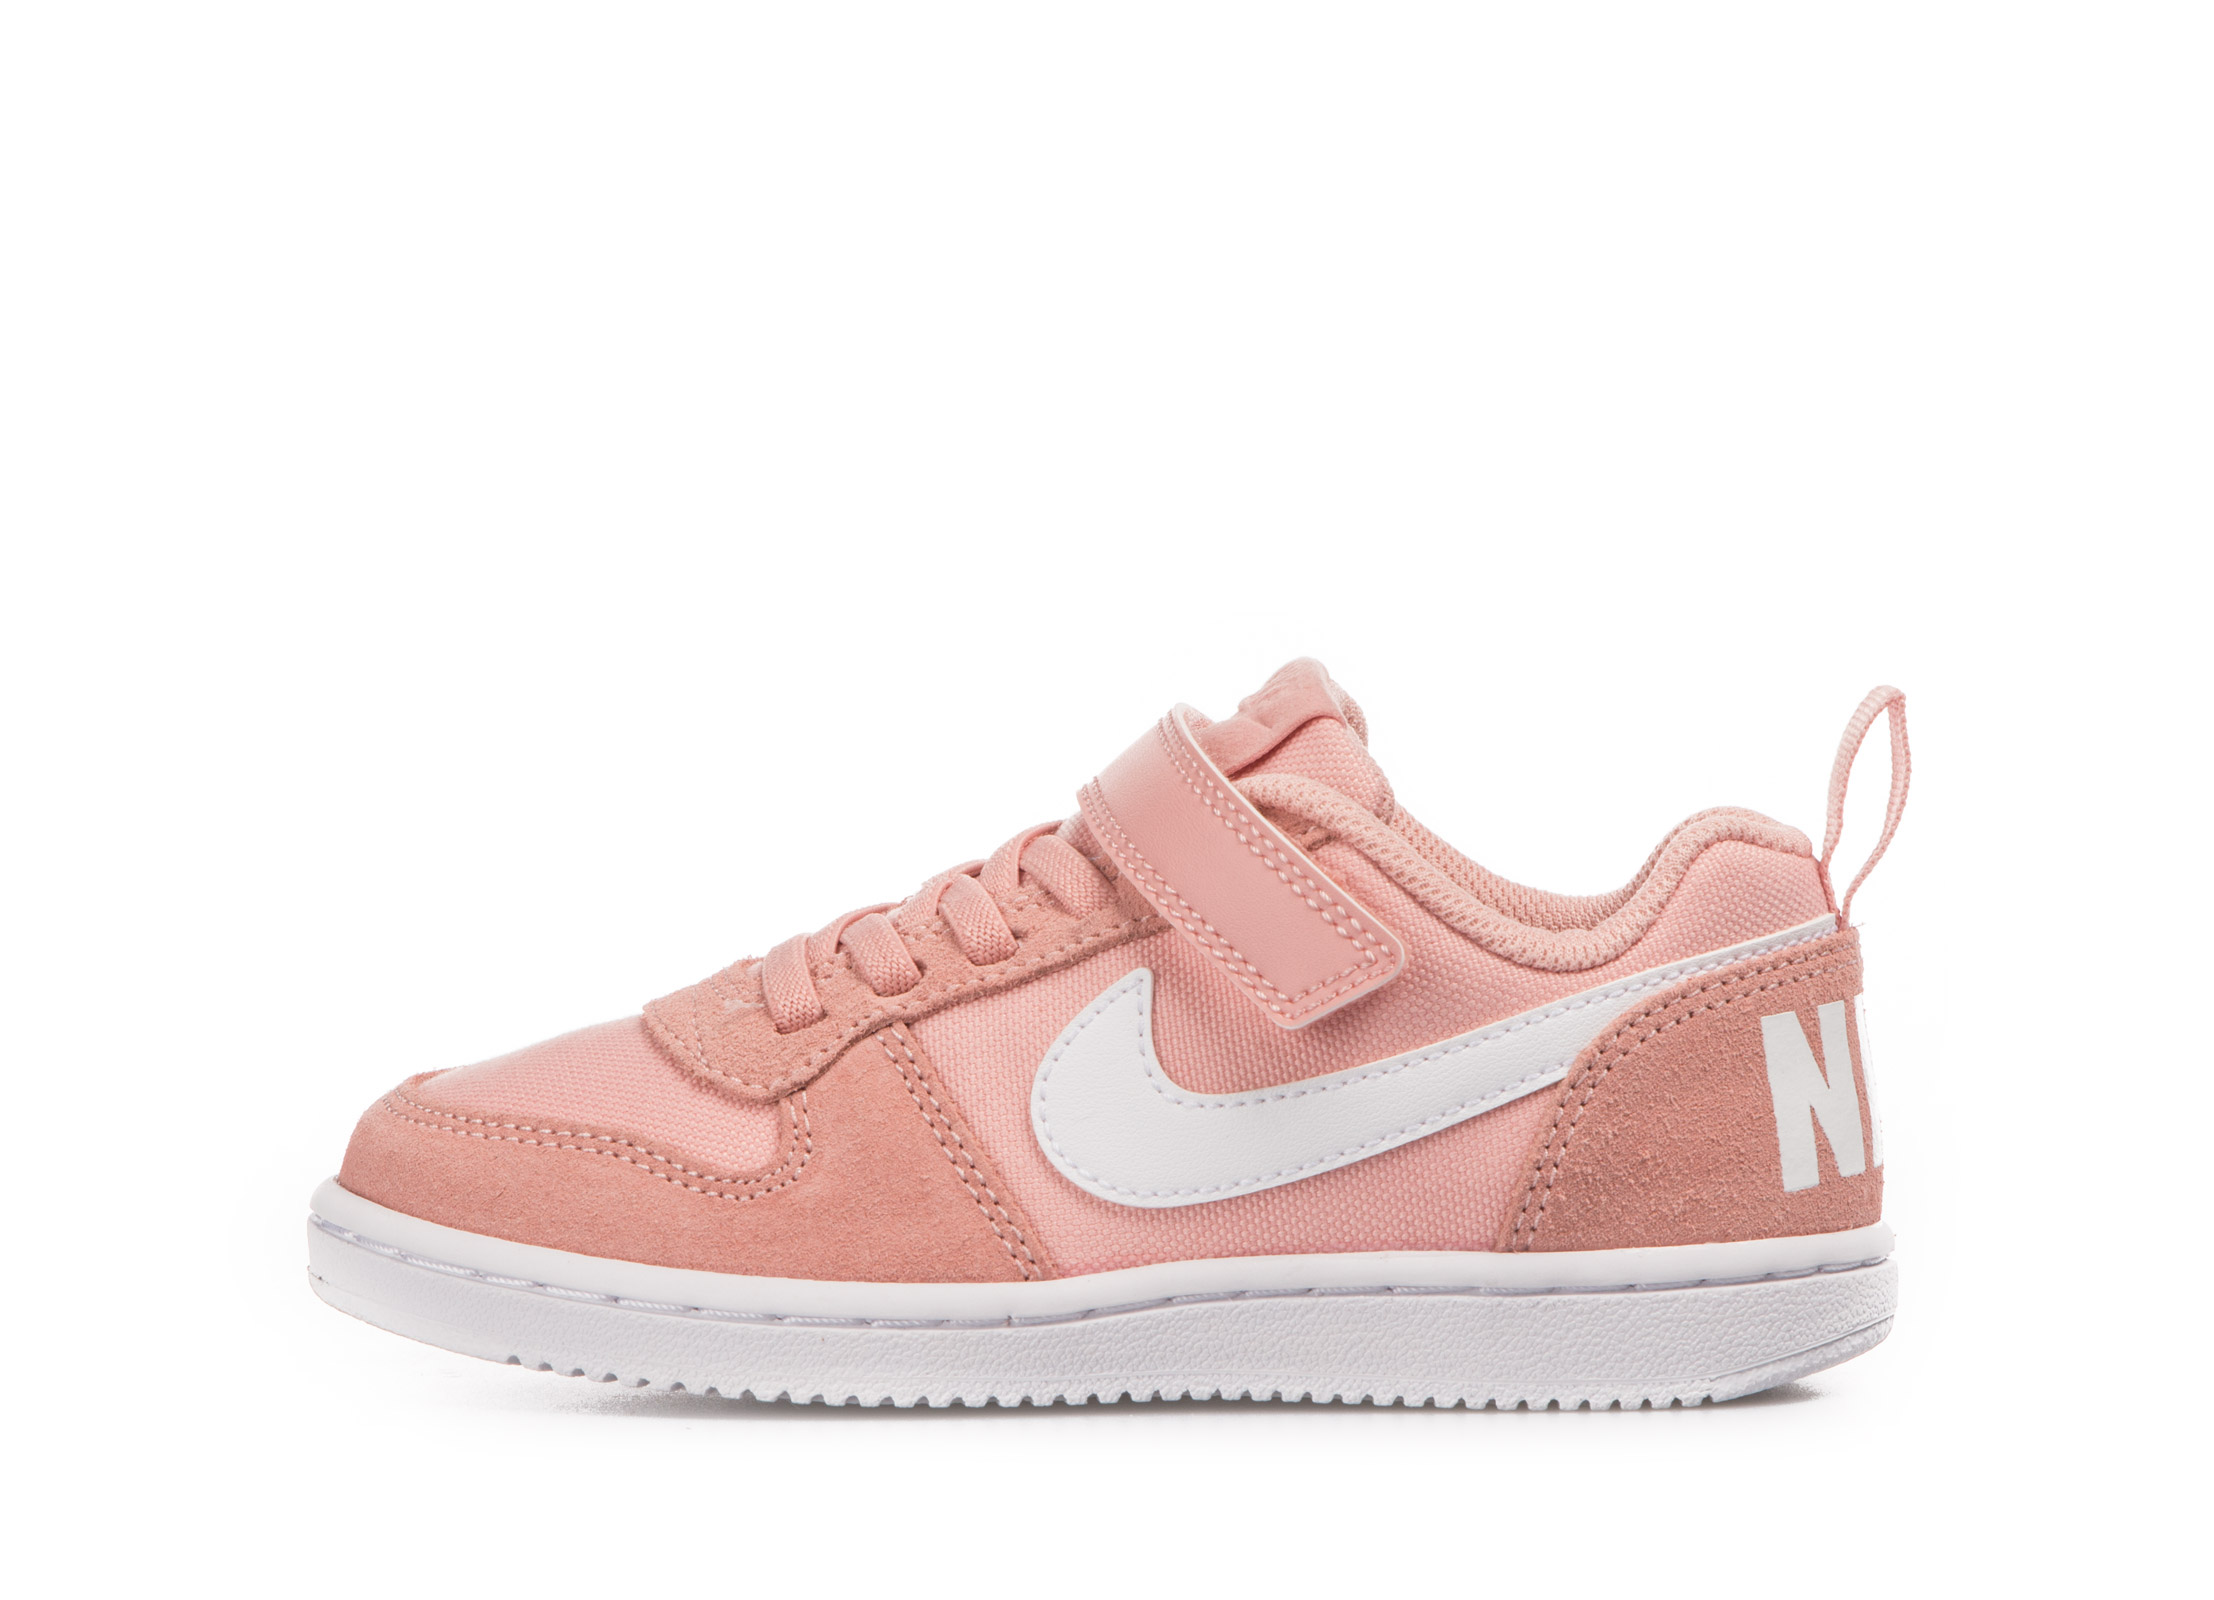 NIKE COURT BOROUGH LOW PE PS CD8514-600 Ροζ